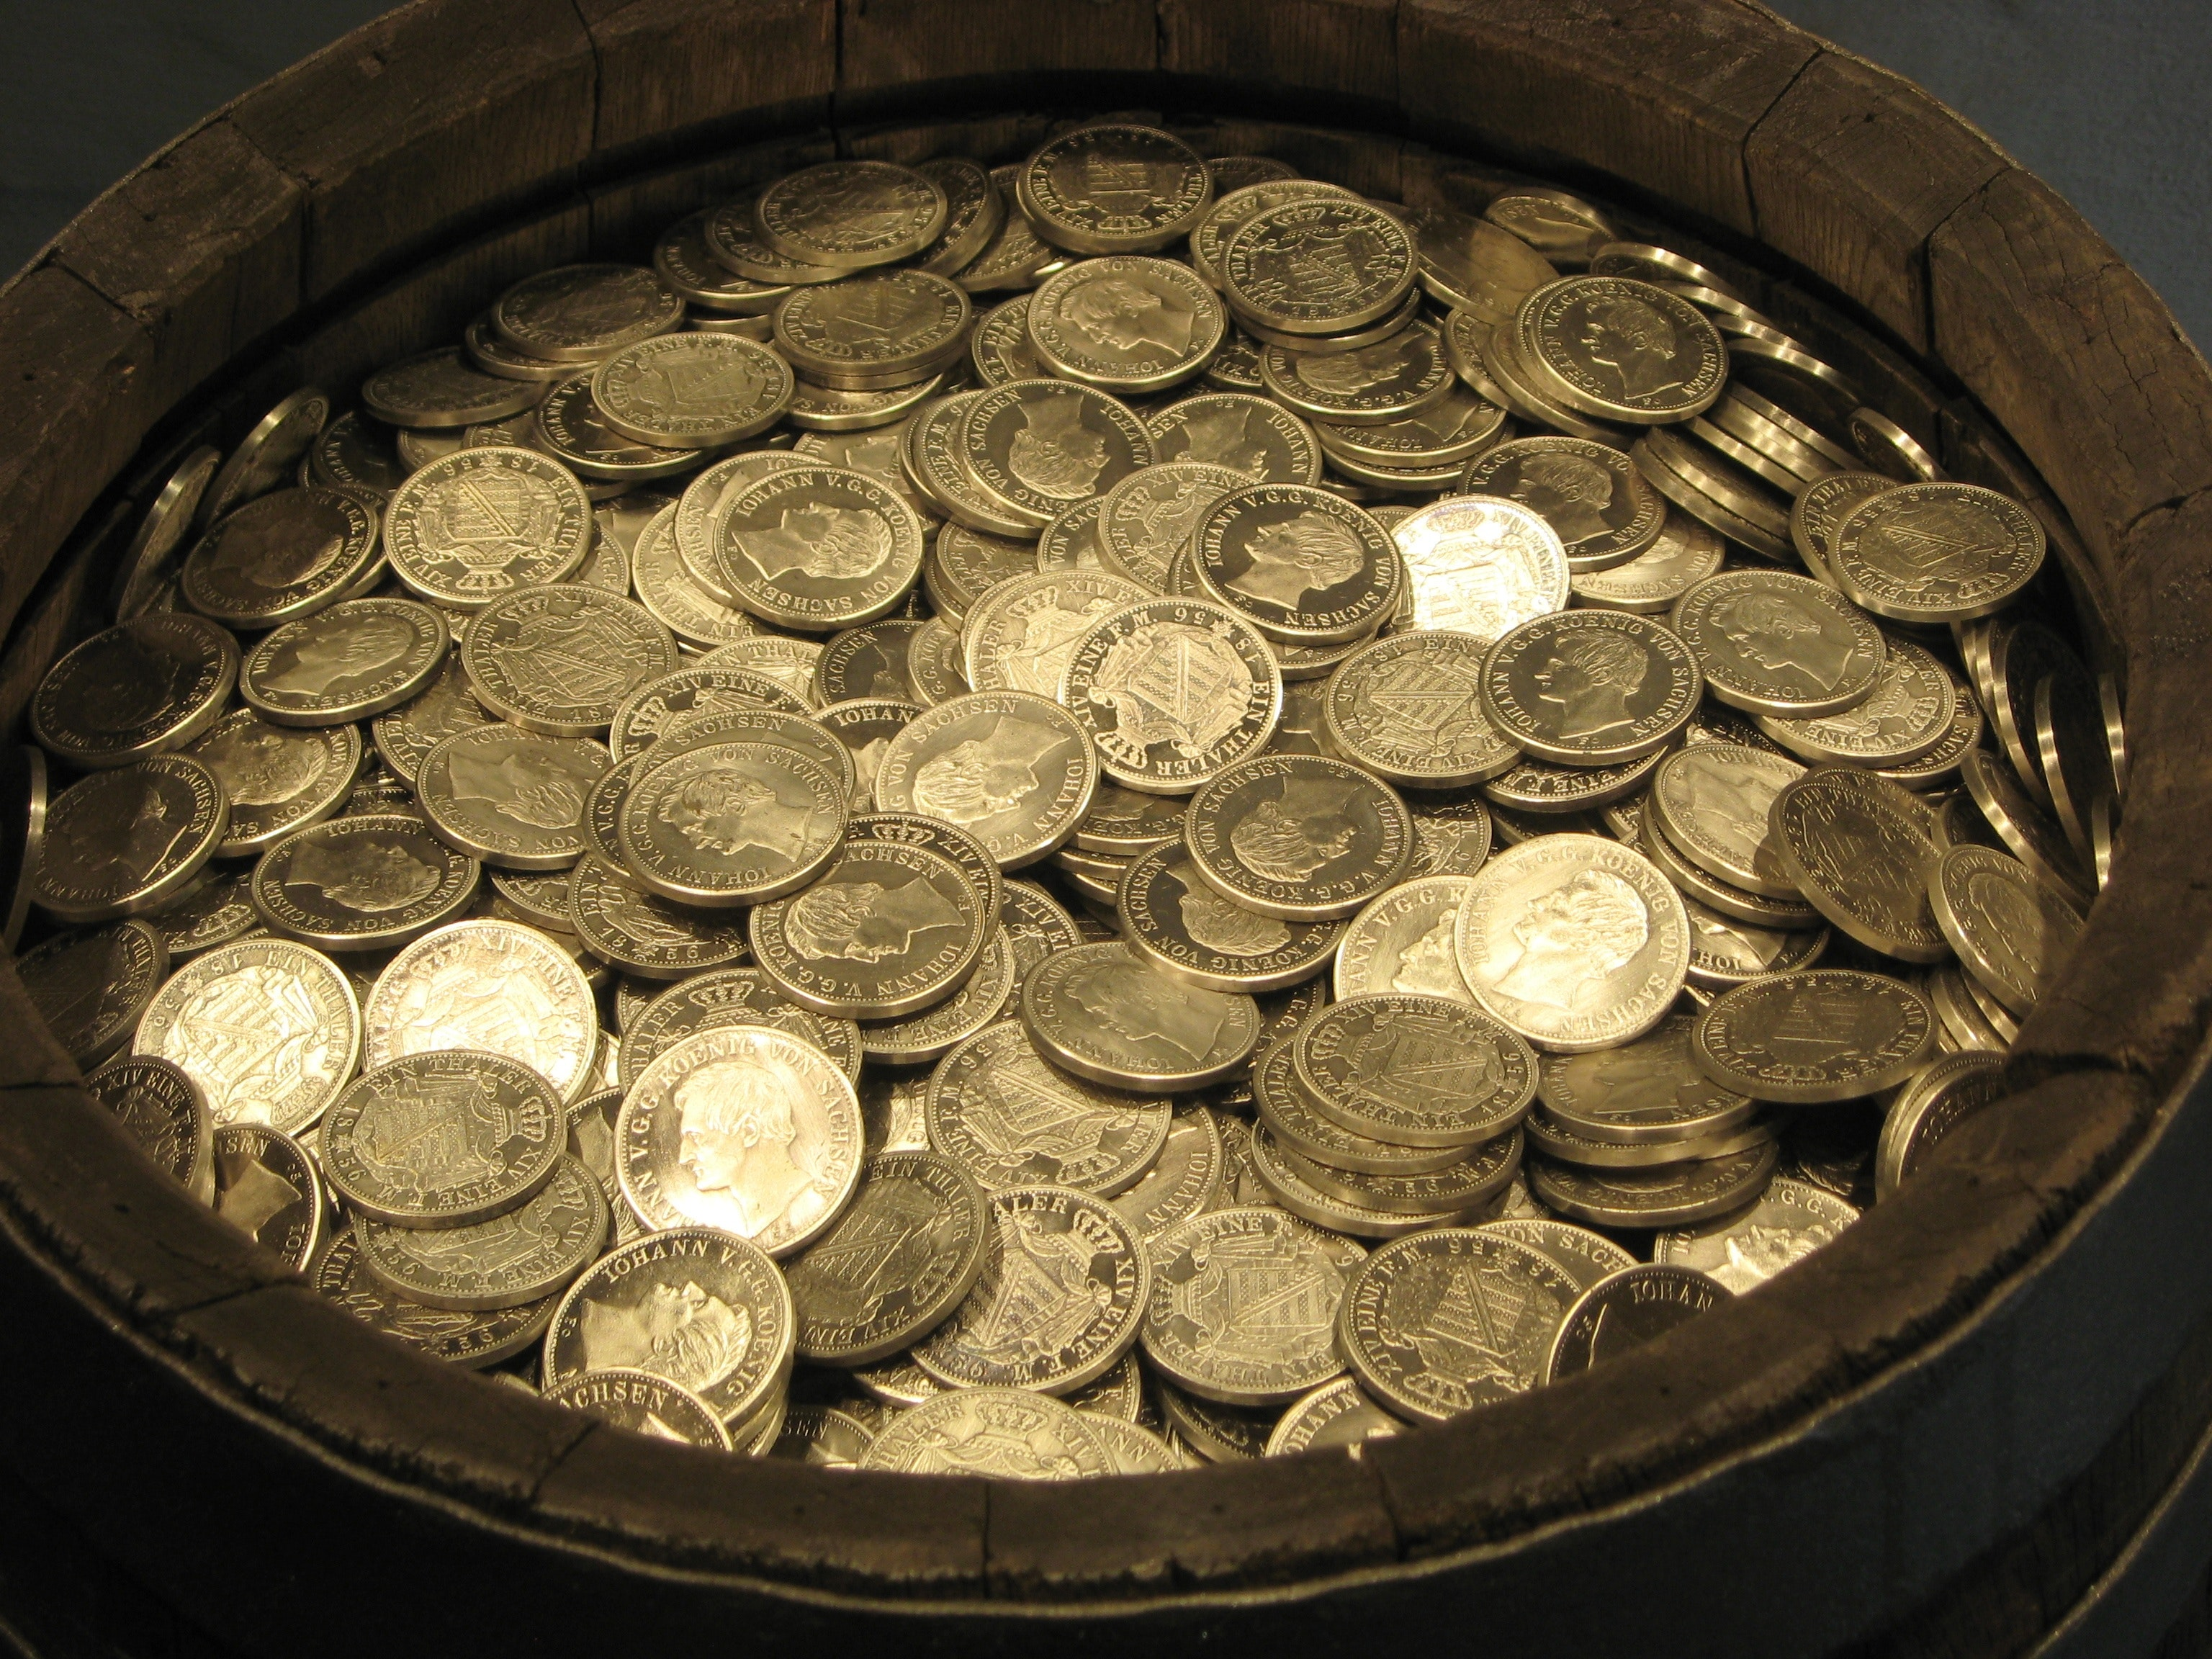 barrel-cash-coins-164580